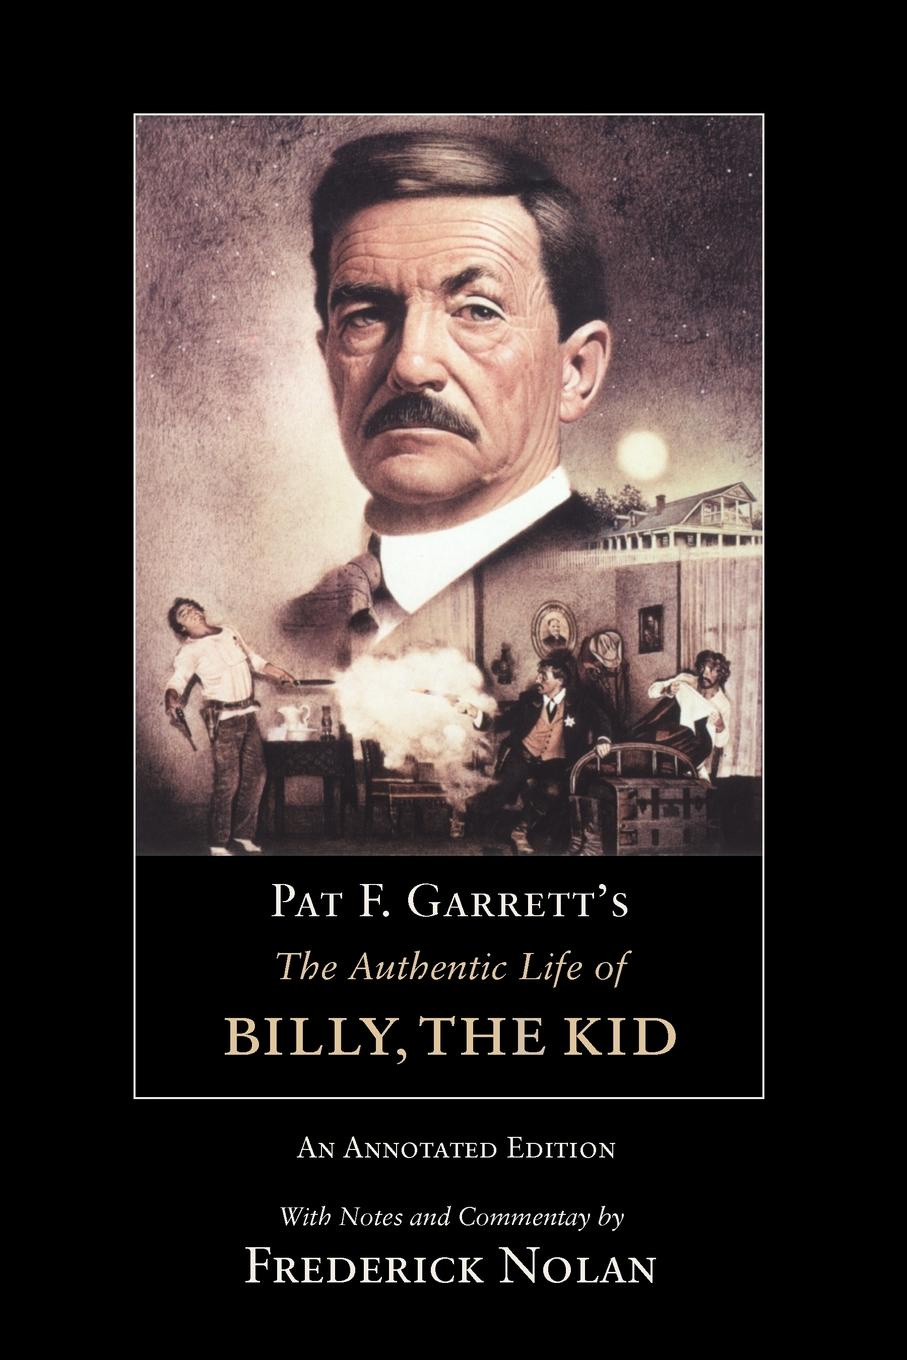 Pat F Garrett PAT F. GARRETT'S THE AUTHENTIC LIFE OF BILLY, THE KID